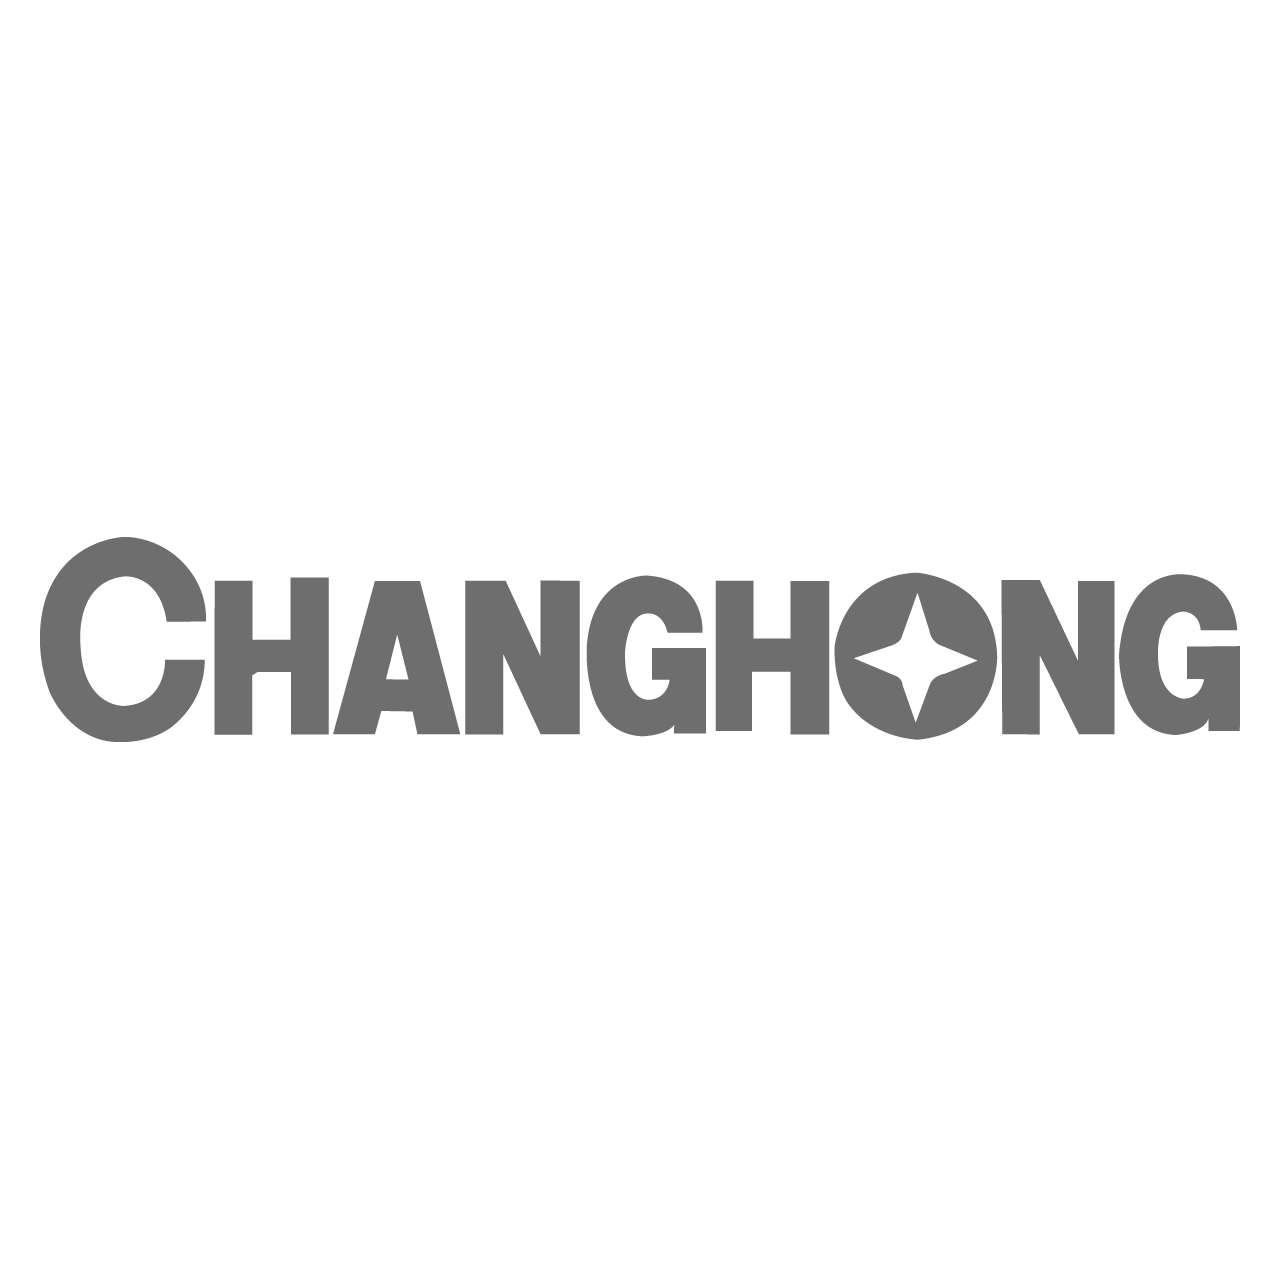 Logo Changhong, black & white